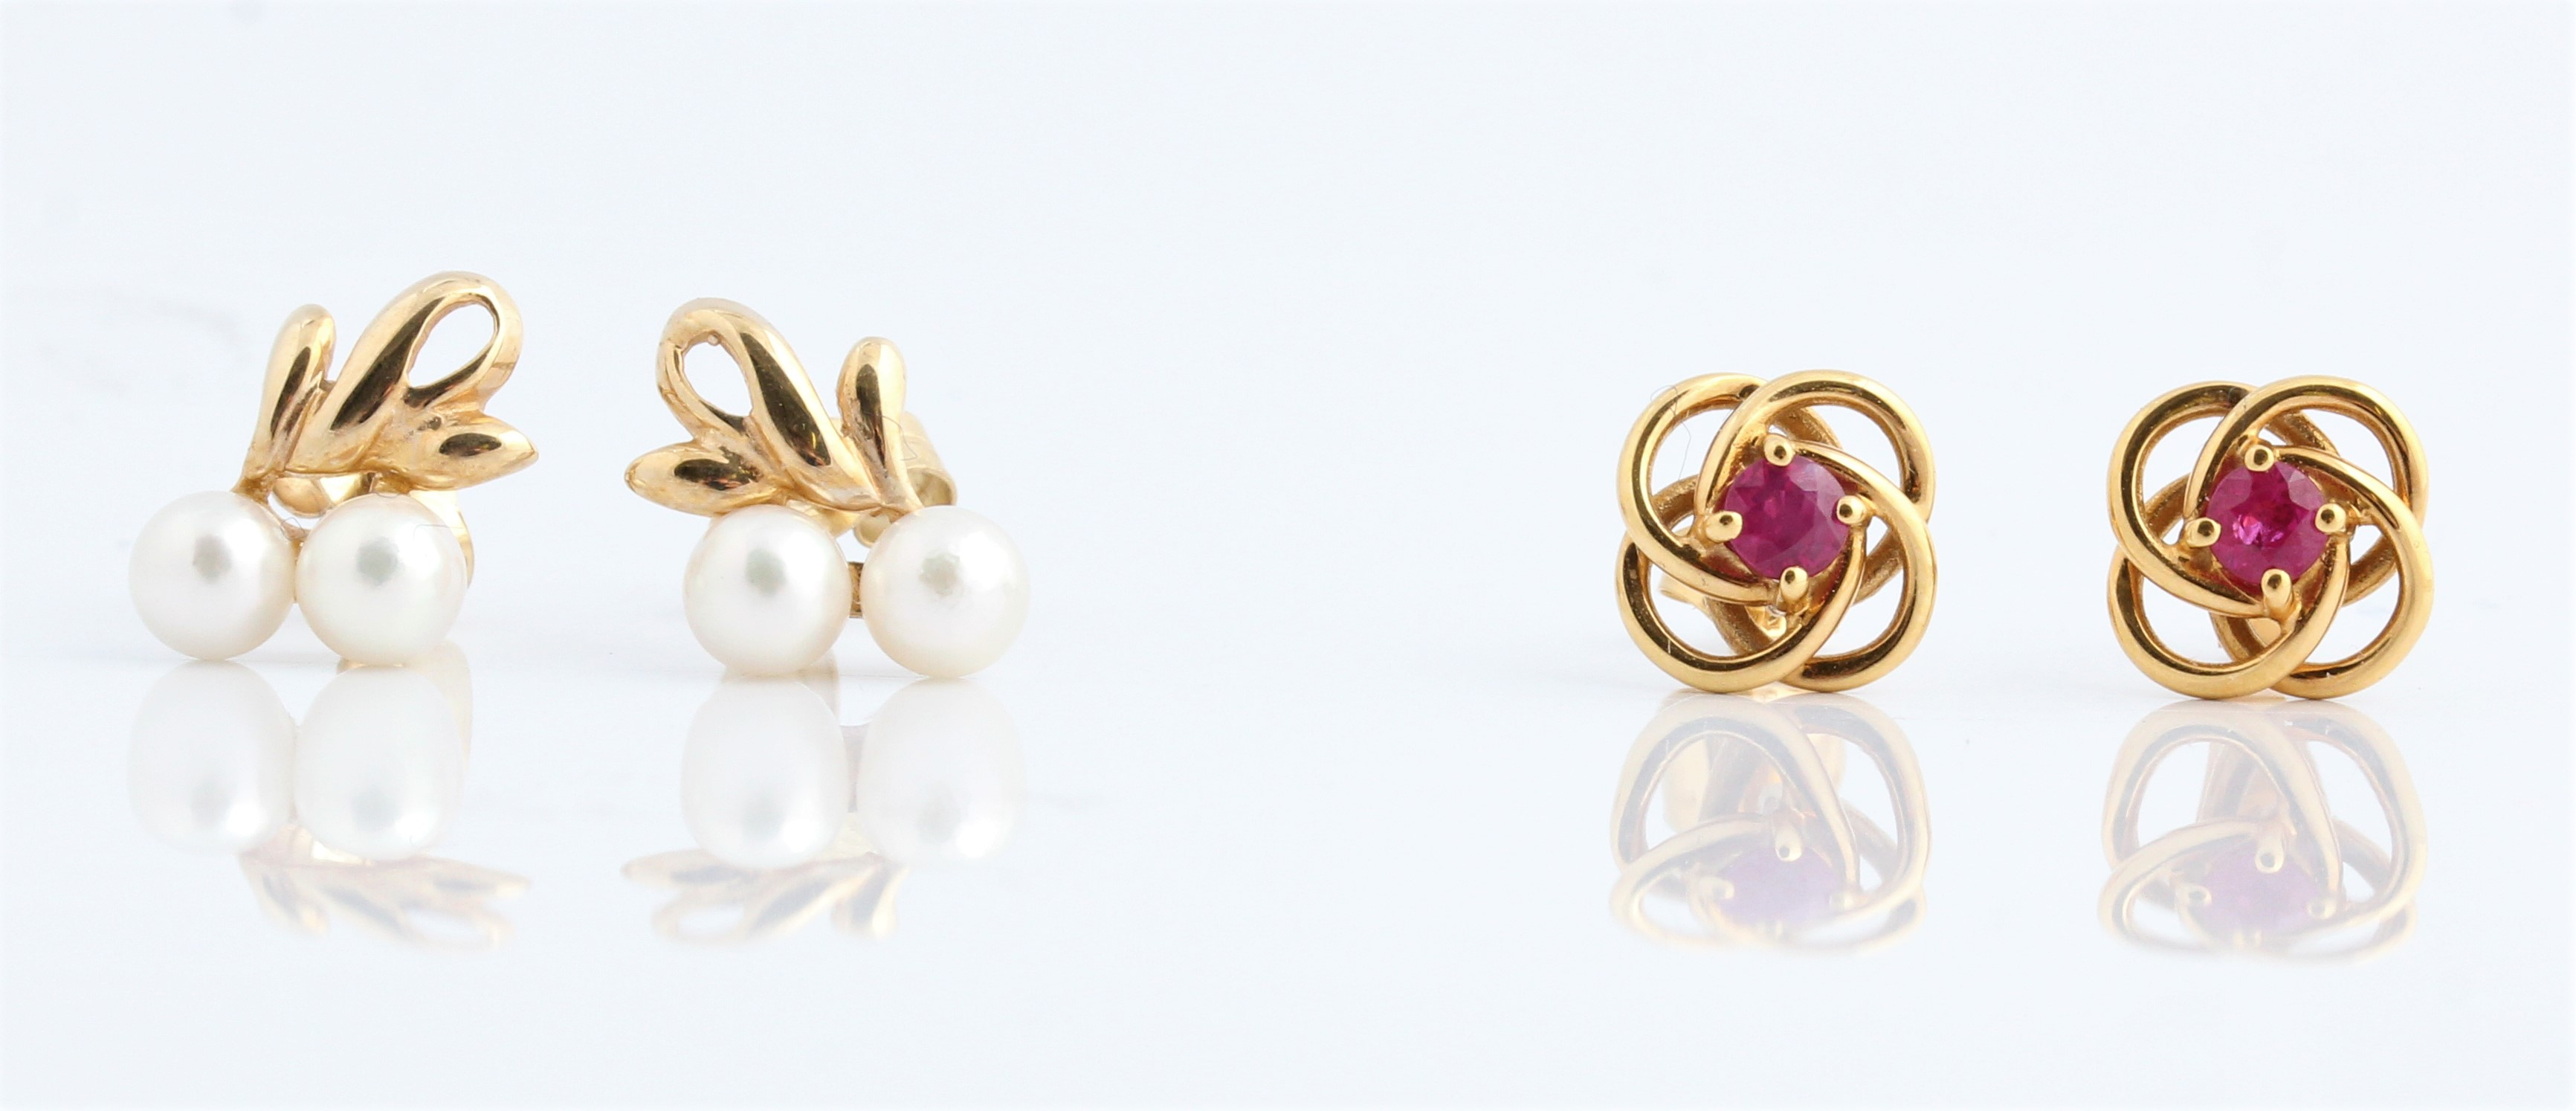 A pair of ruby set knot stud earrings, stamped 375, together with a pair of hallmarked 9ct yellow